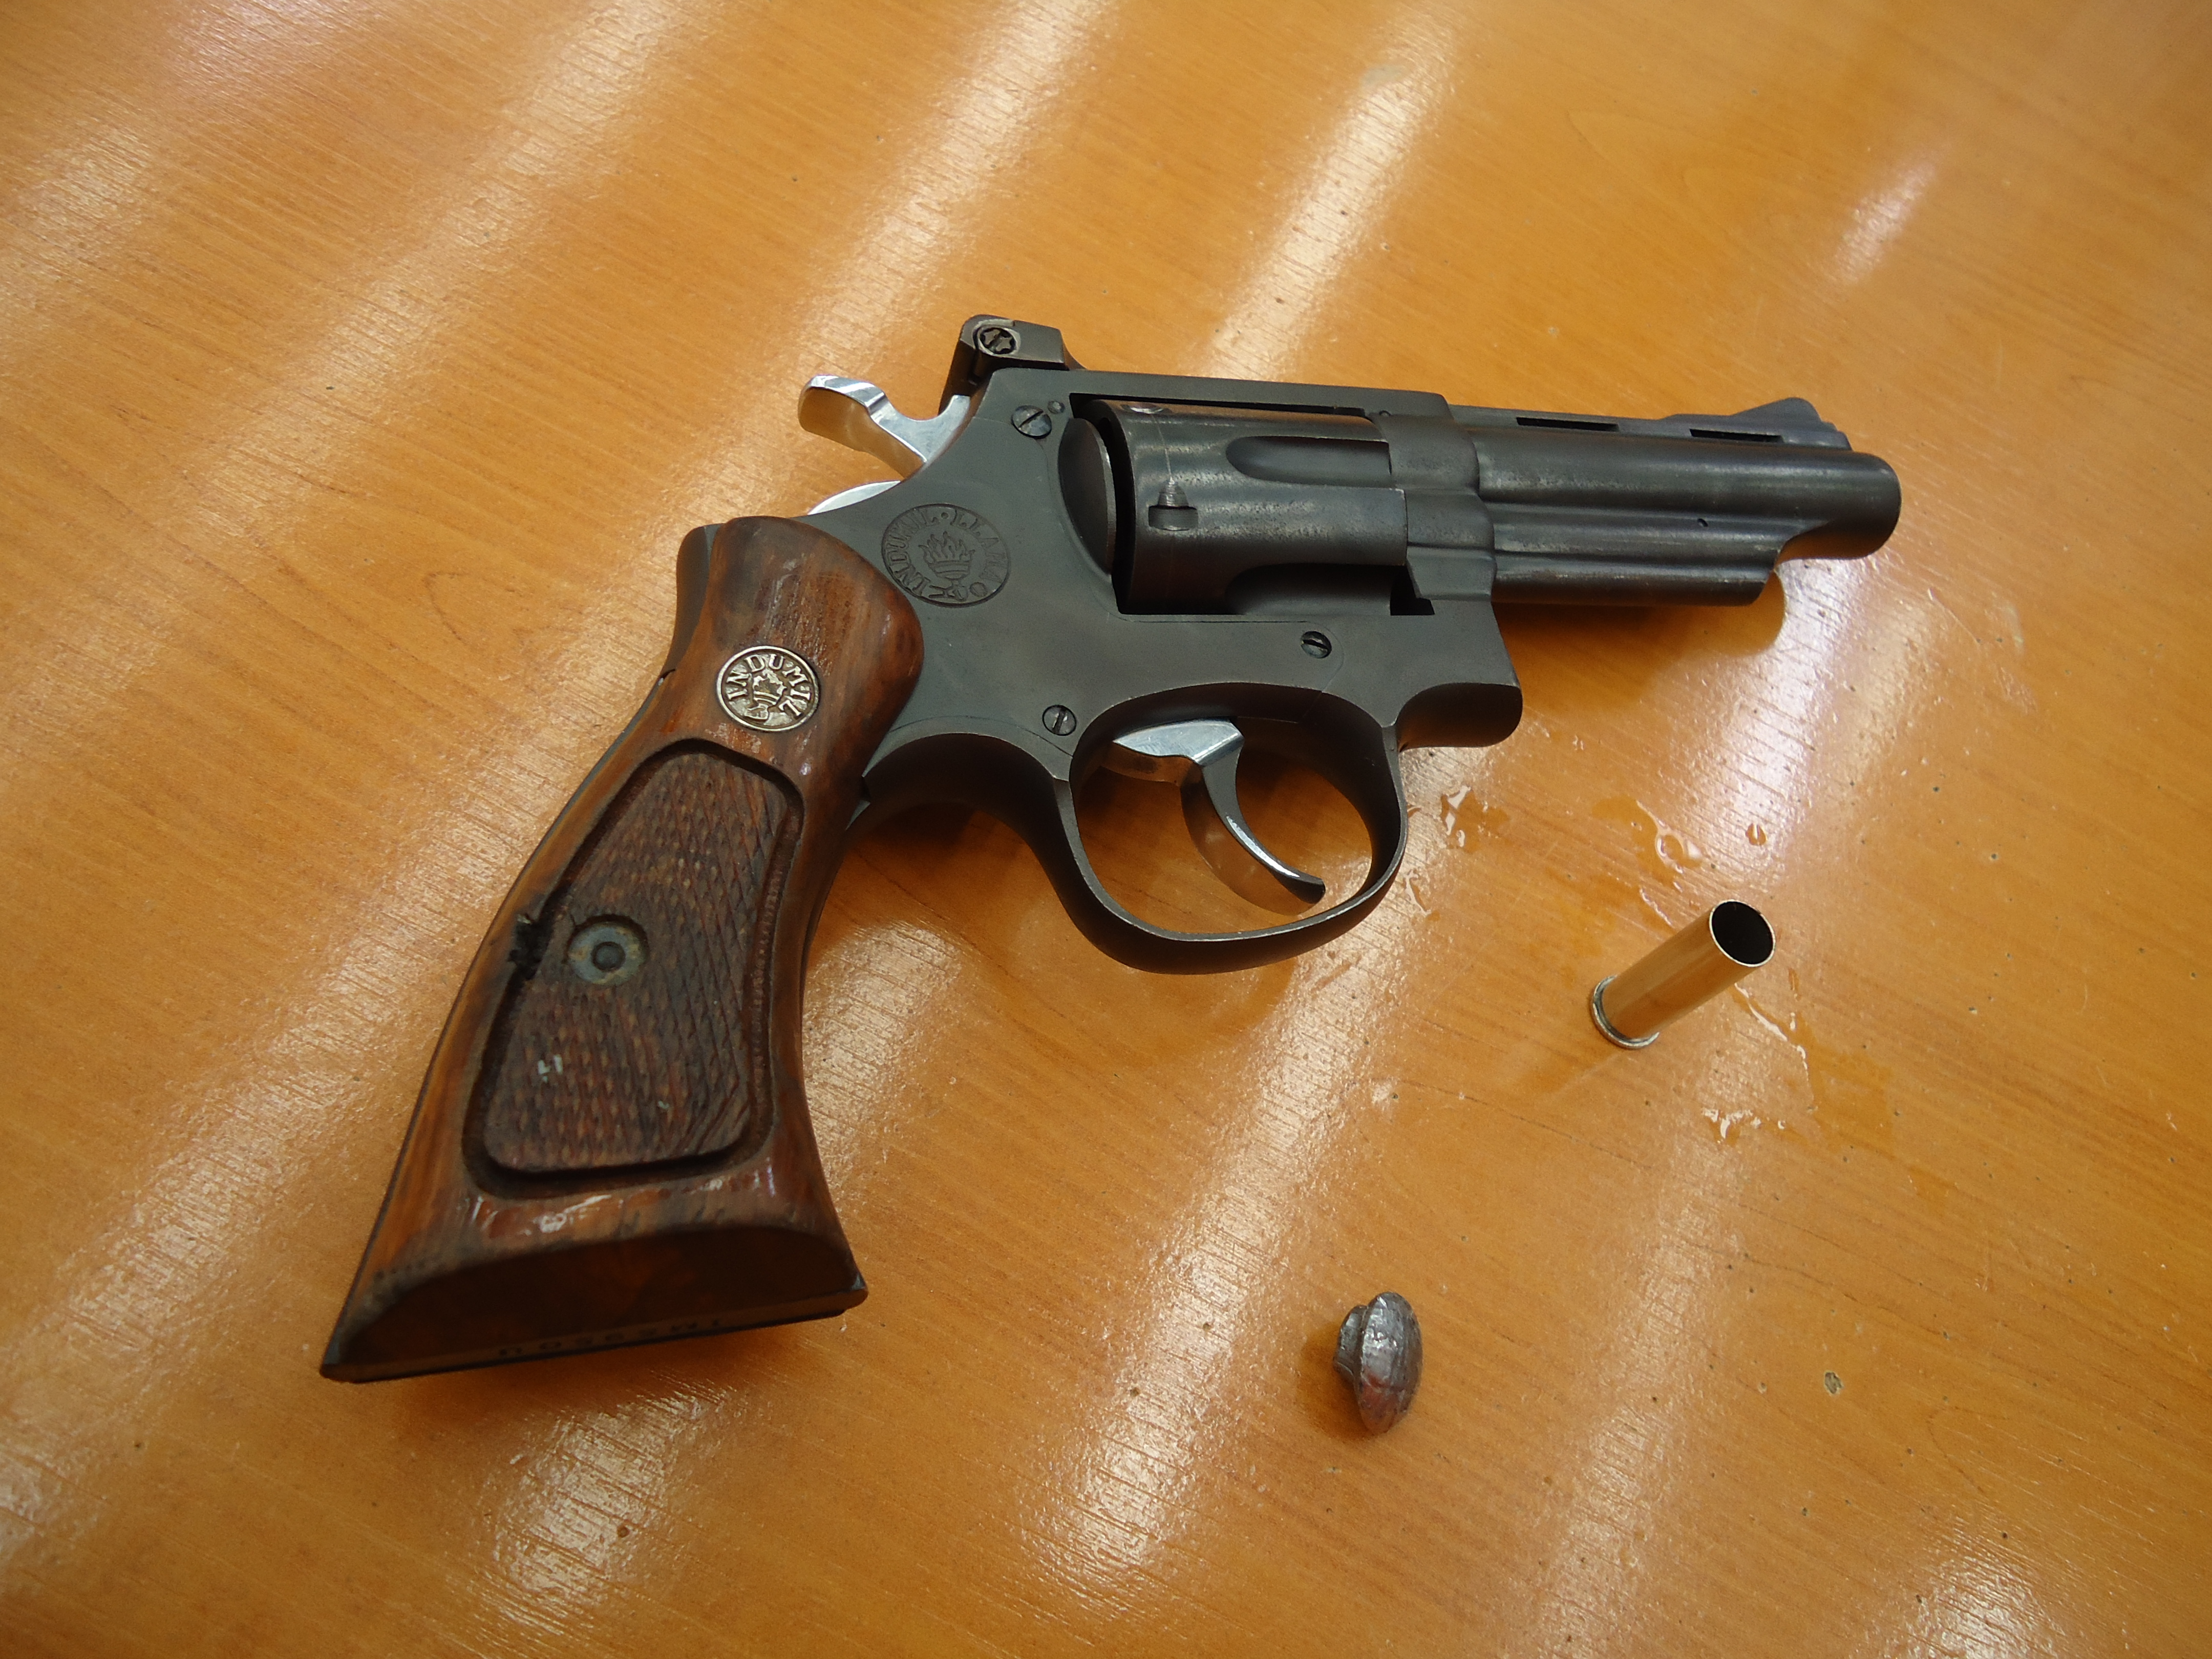 The .38 caliber long pistol Miguel Caballero used to shoot author Jim Clash, with spent shell casing and bullet lead.